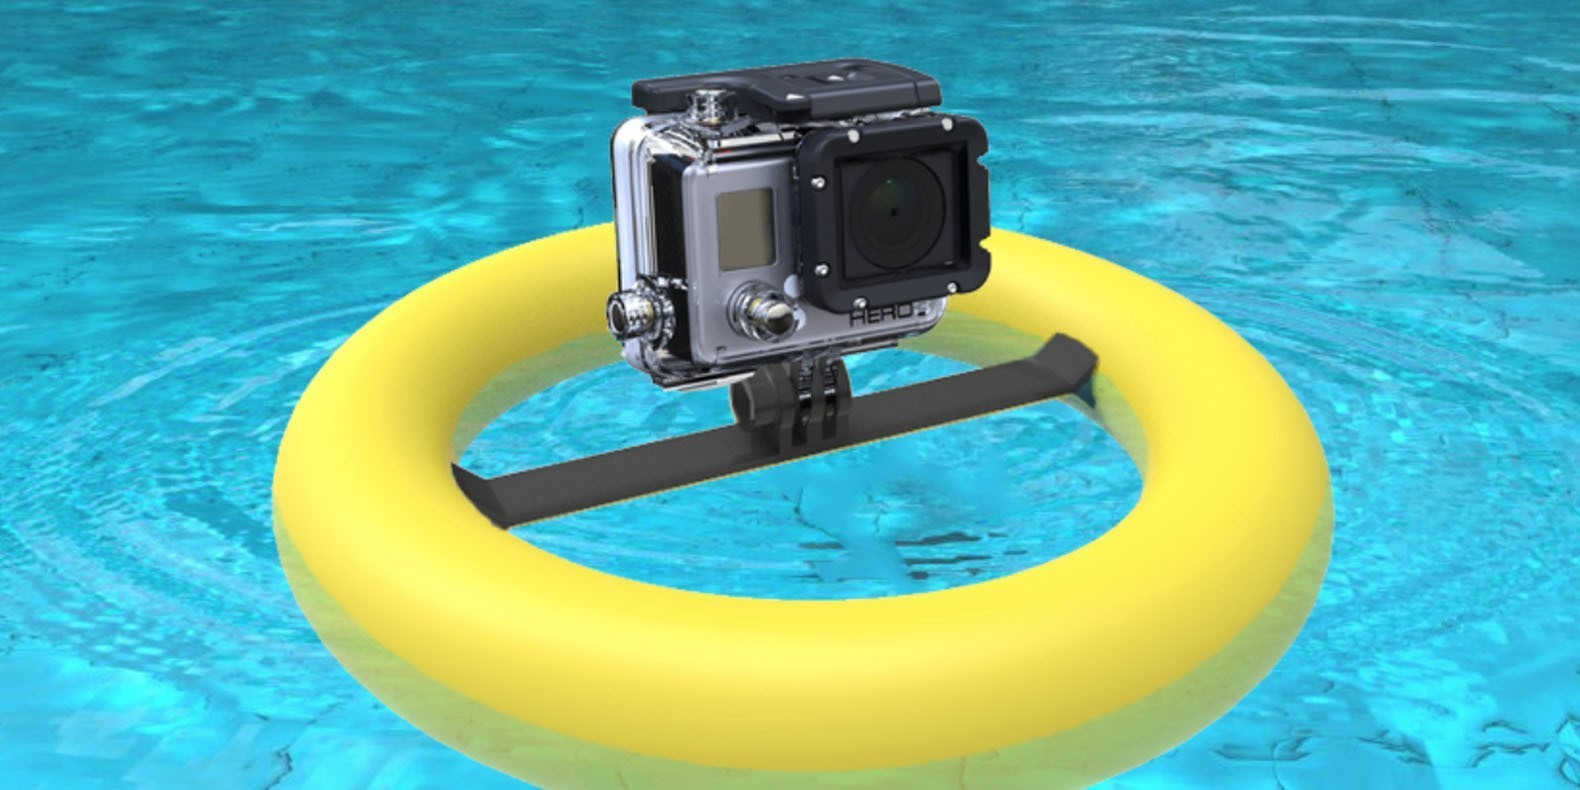 Find here a selection of the best GoPro related 3D models to make with a 3D printer